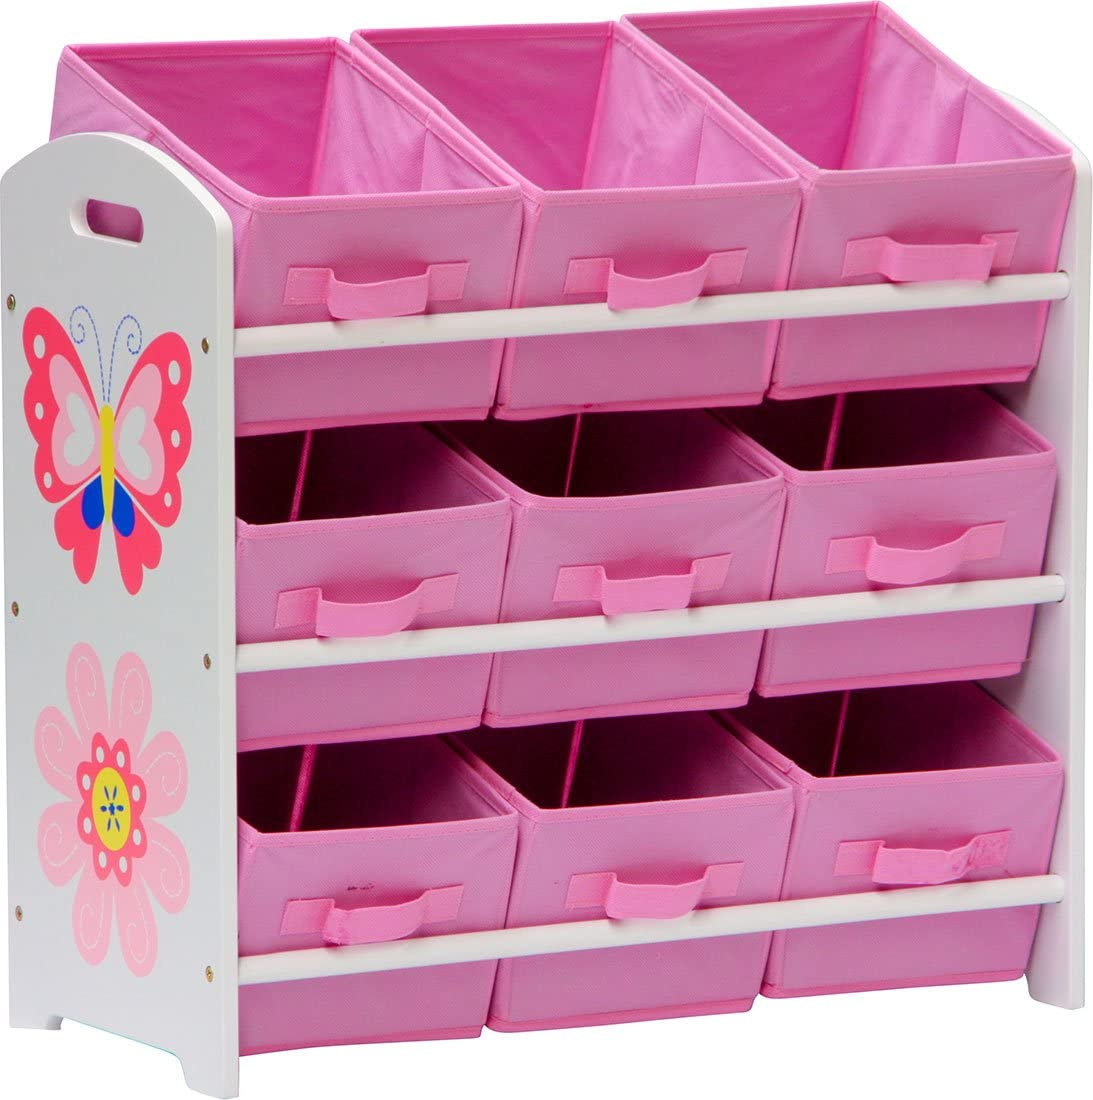 IB-Style Childrens 2 in 1 Blackboard//Whiteboard Papillon Drawing School Painting Teacher Magnetic Pink